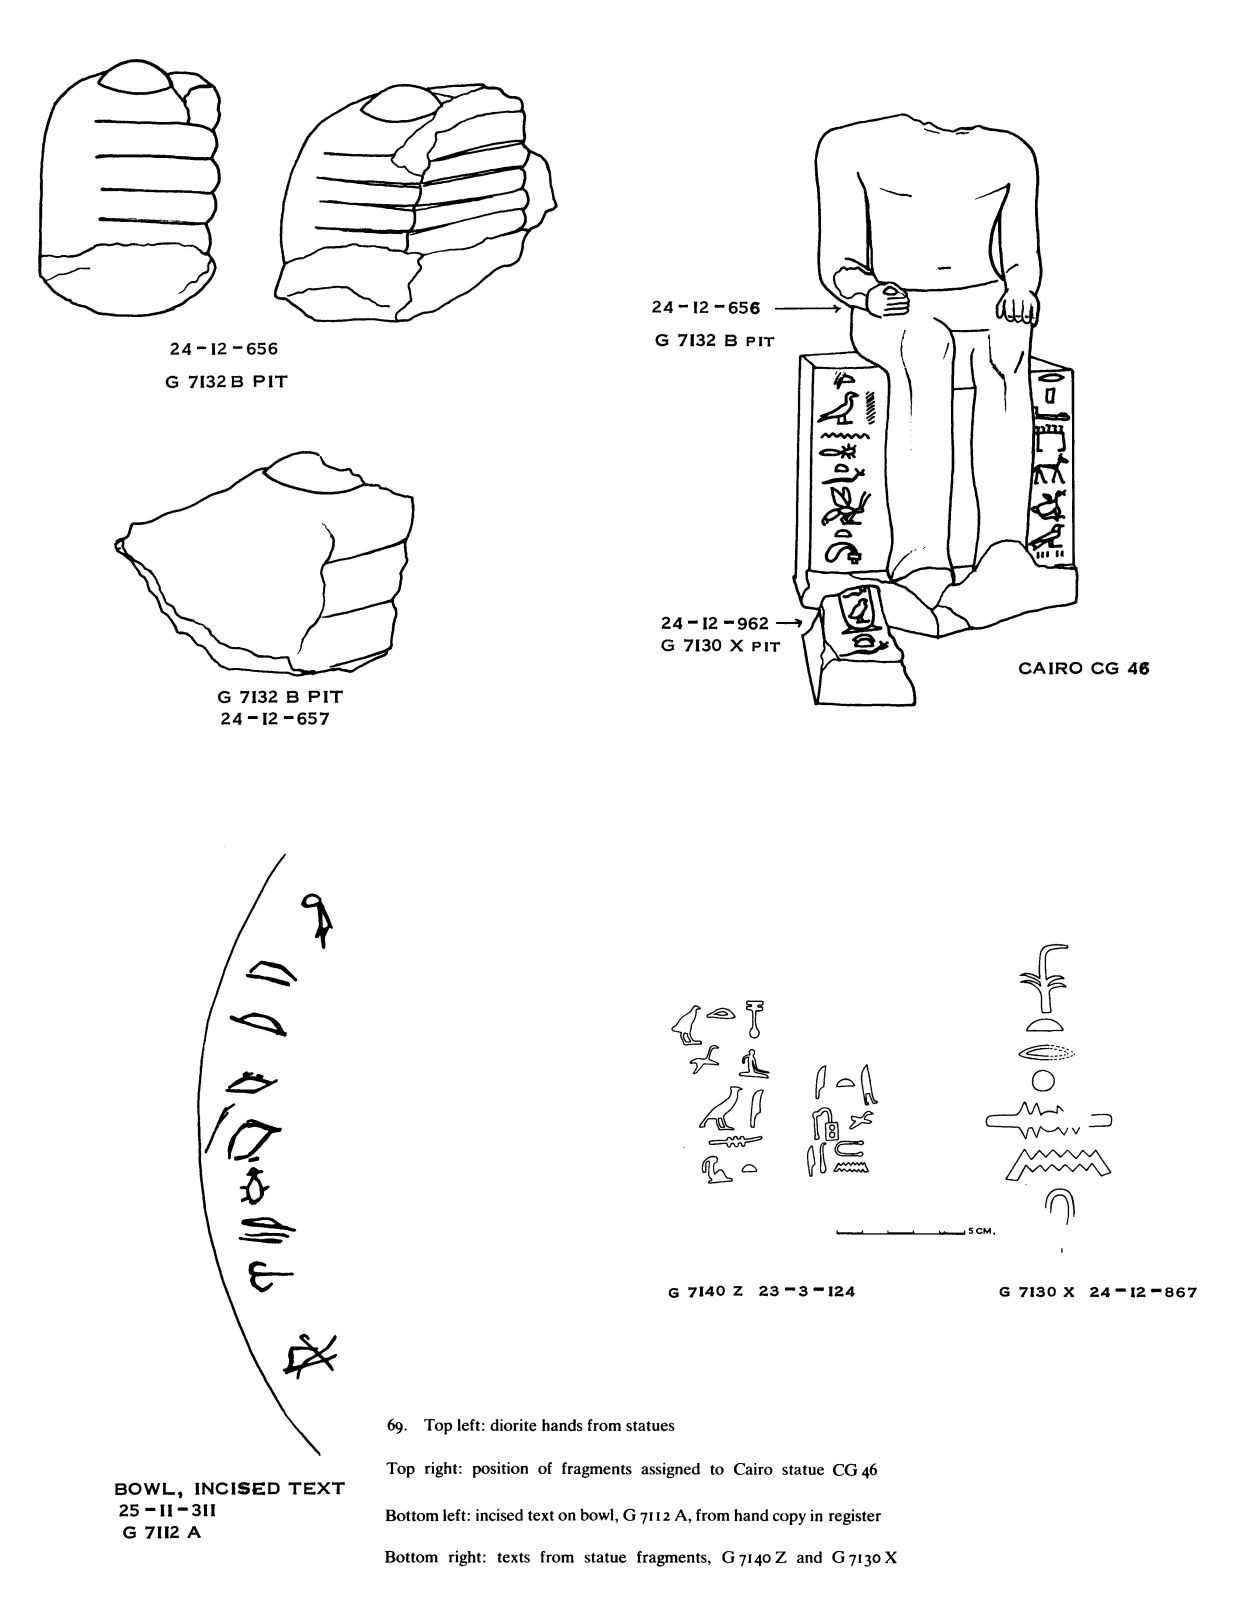 Drawings: Objects from G 7112, G 7130, G 7132, G 7130, Shaft X (= G 7133), G 7140, Shaft Z (= G 7135)